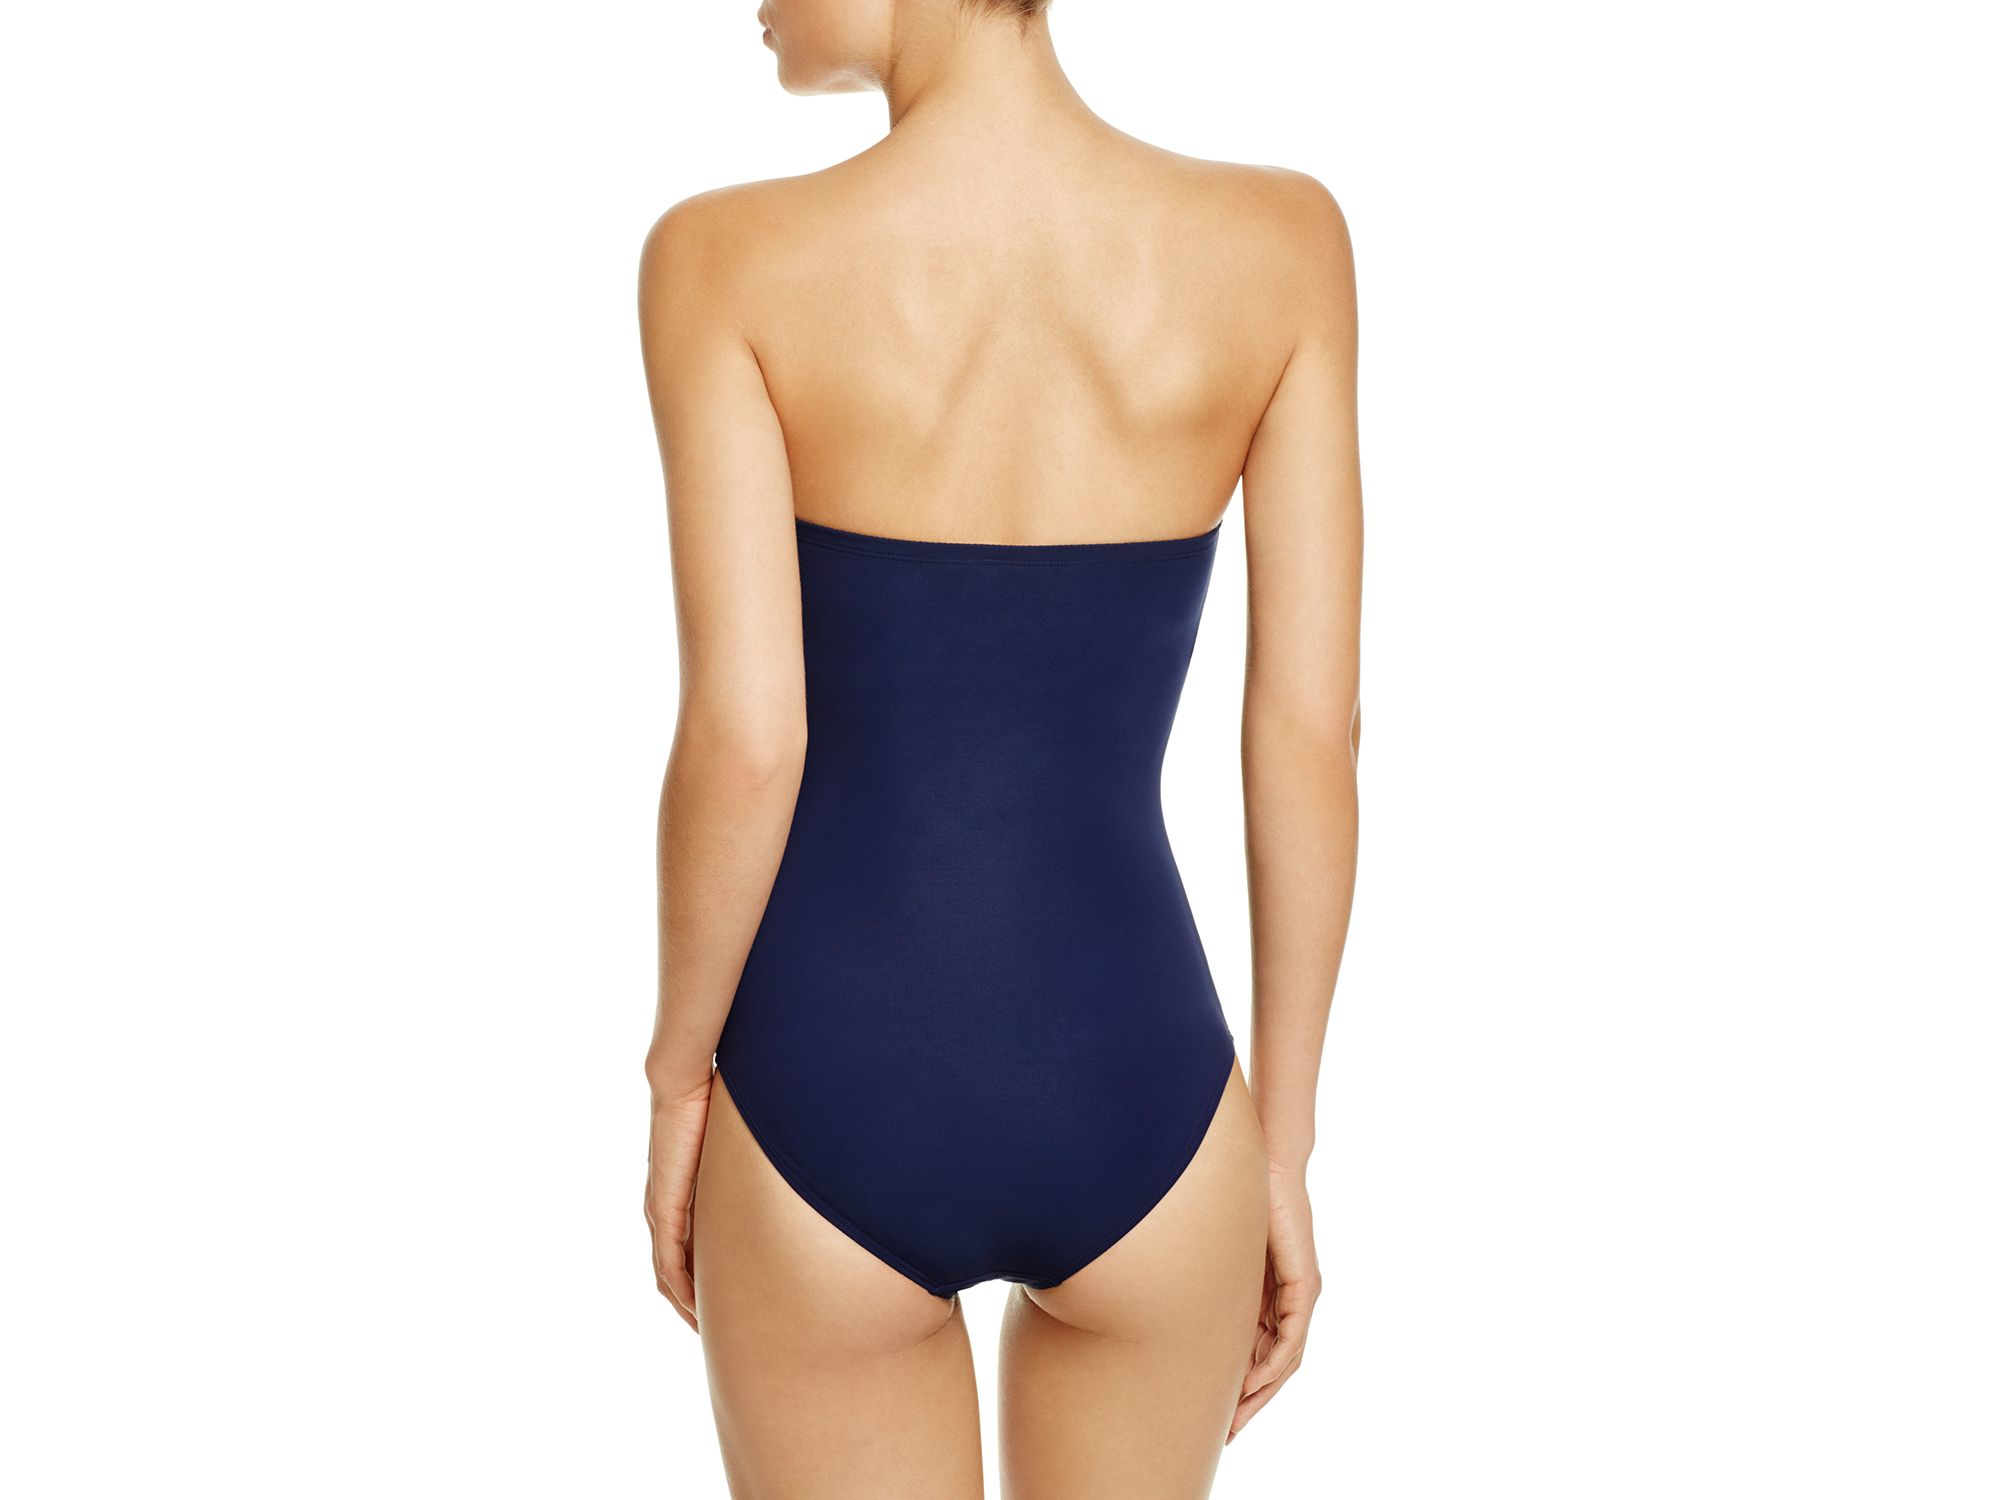 ff20e03b52aa8 Tory Burch Color Block Bandeau Underwire One Piece Swimsuit in Blue ...